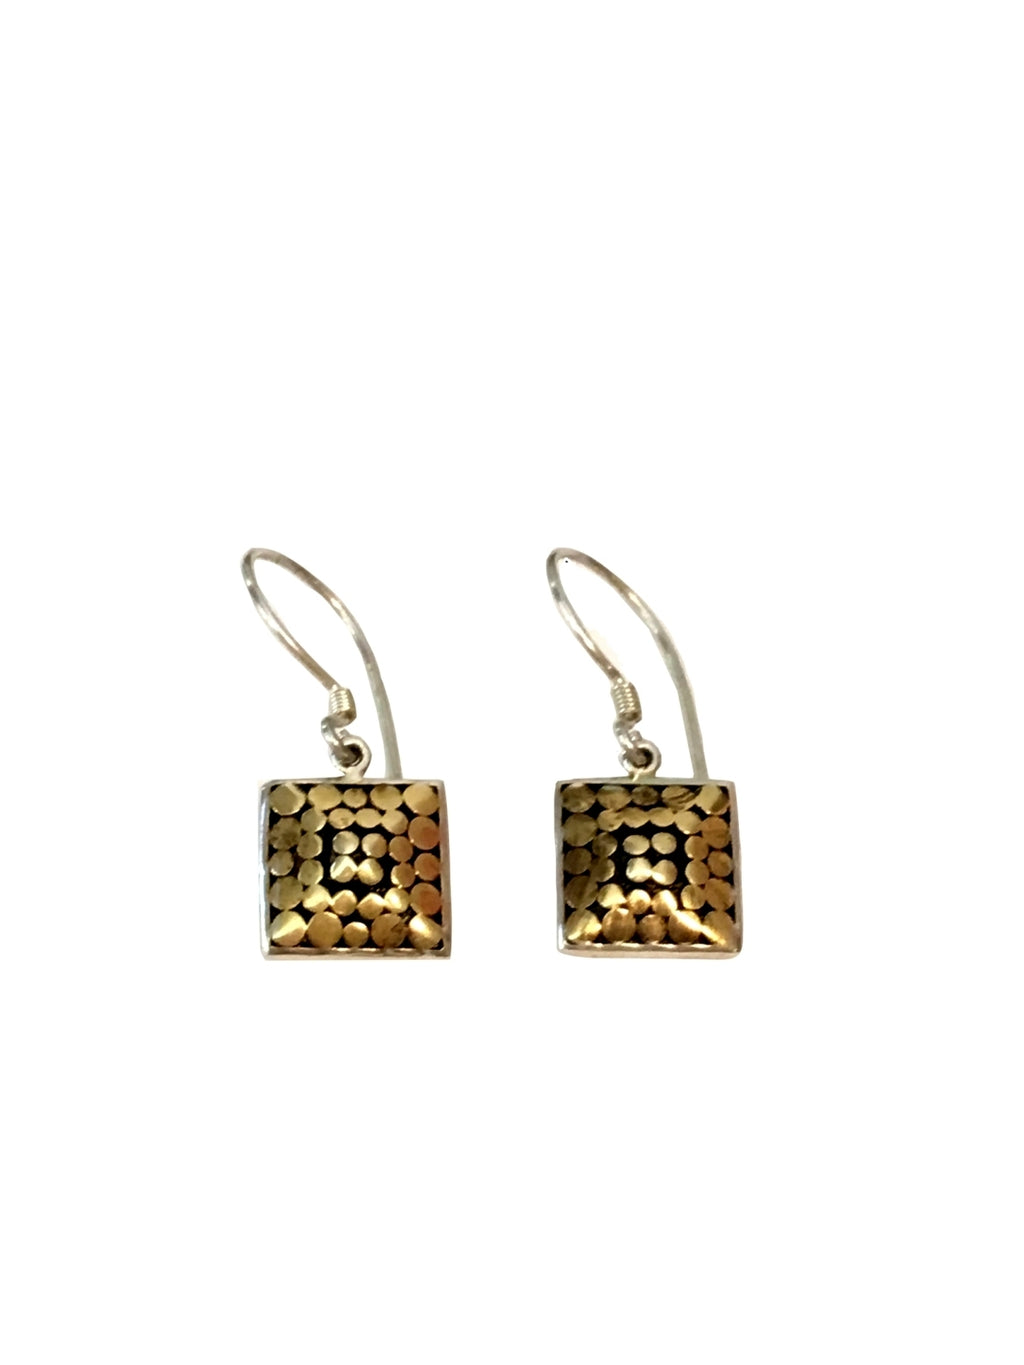 Sterling & Gold Reach for the Top Earrings